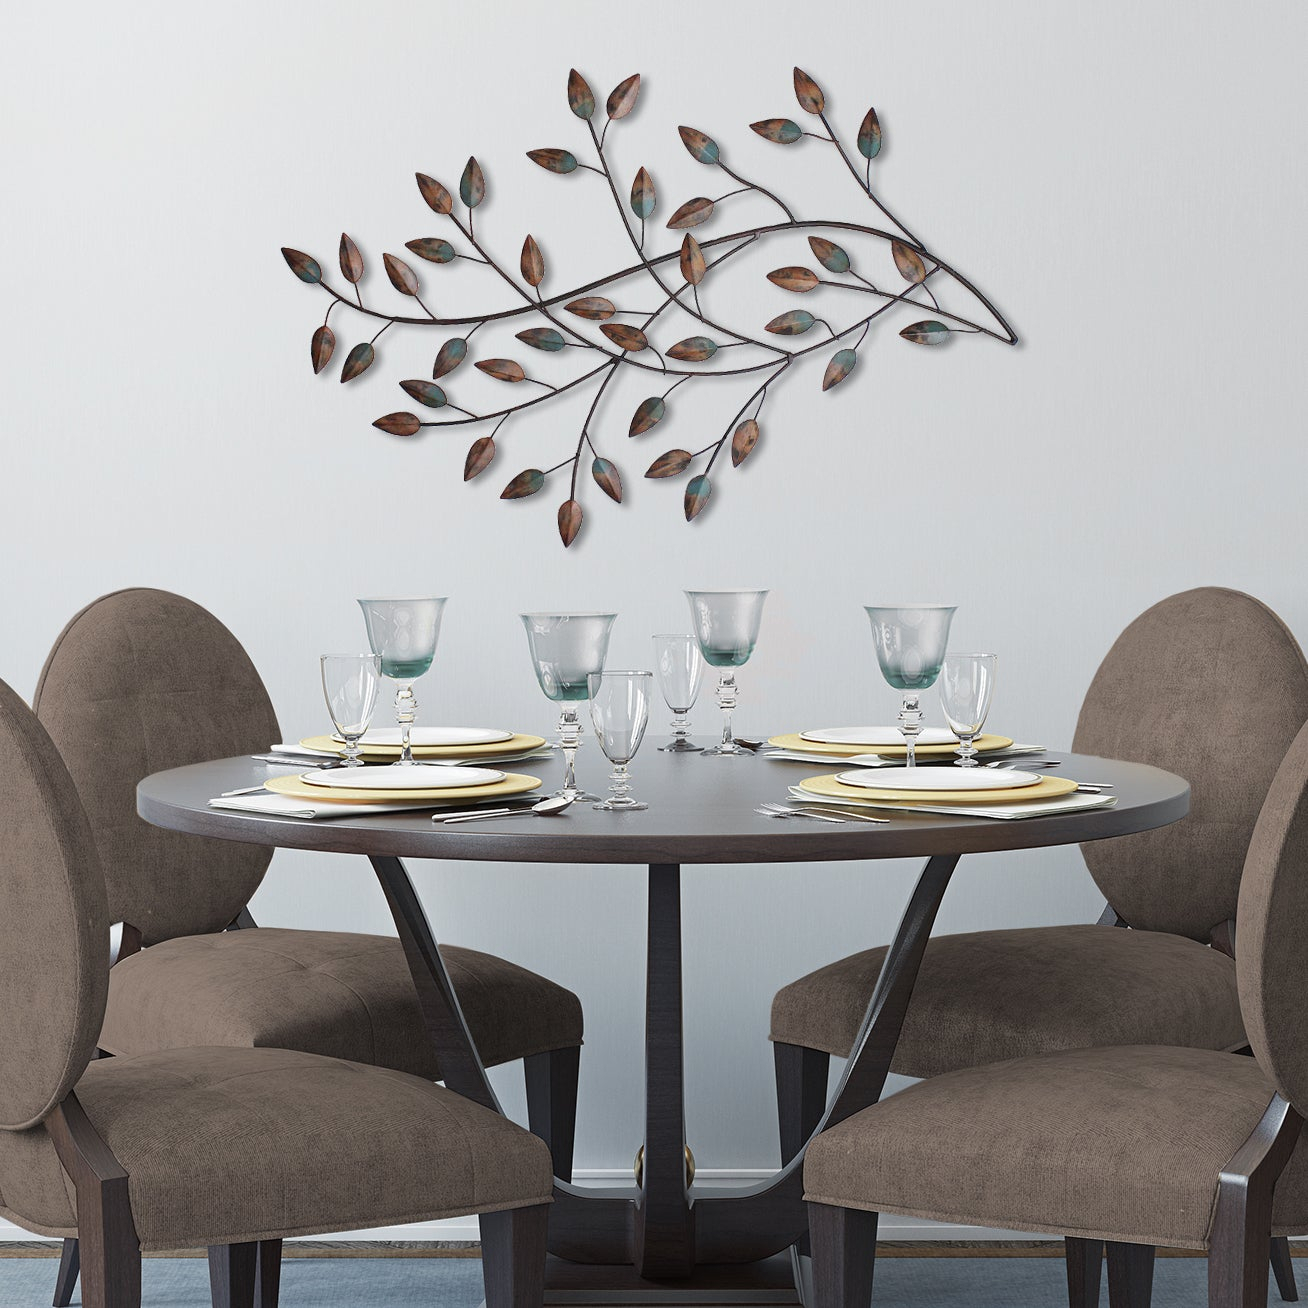 Silver Orchid Nansen Blowing Leaves Wall Decor within Blowing Leaves Wall Decor (Image 15 of 30)